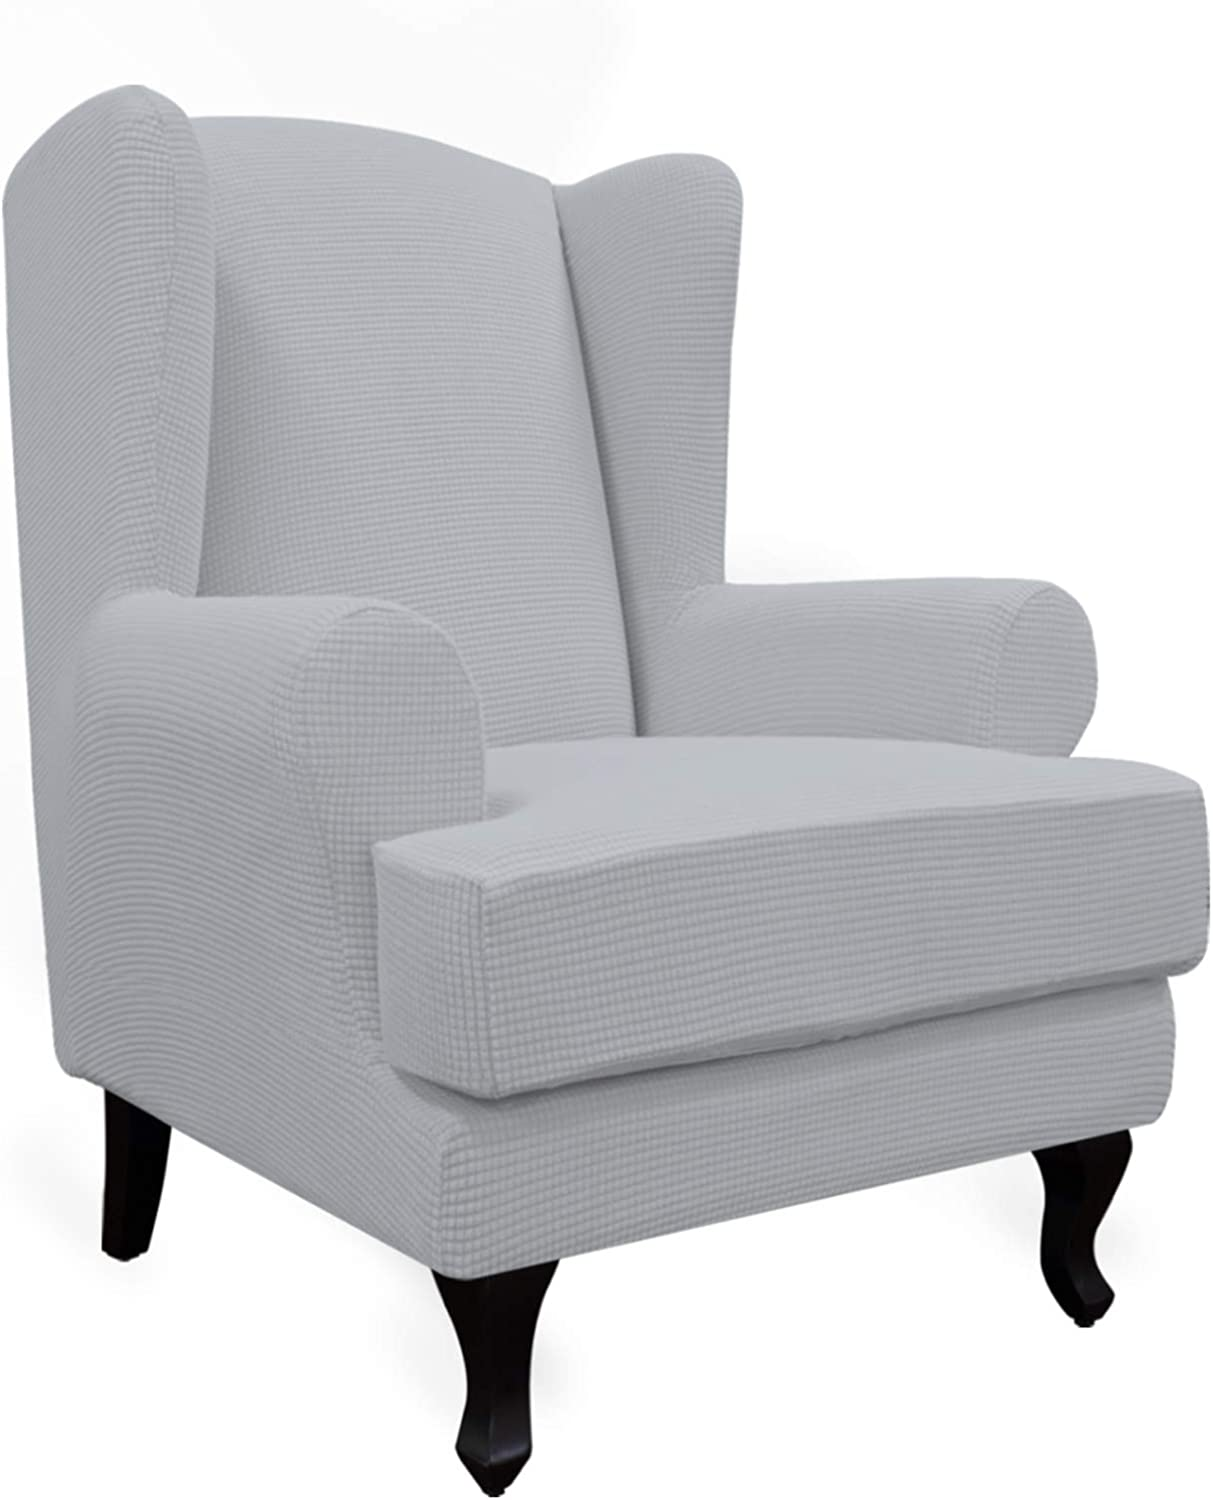 Easy-Going Stretch Wingback Chair Sofa Slipcover 2-Piece Sofa Cover Furniture Protector Couch Soft with Elastic Bottom, Spandex Jacquard Fabric Small Checks Silver Gray